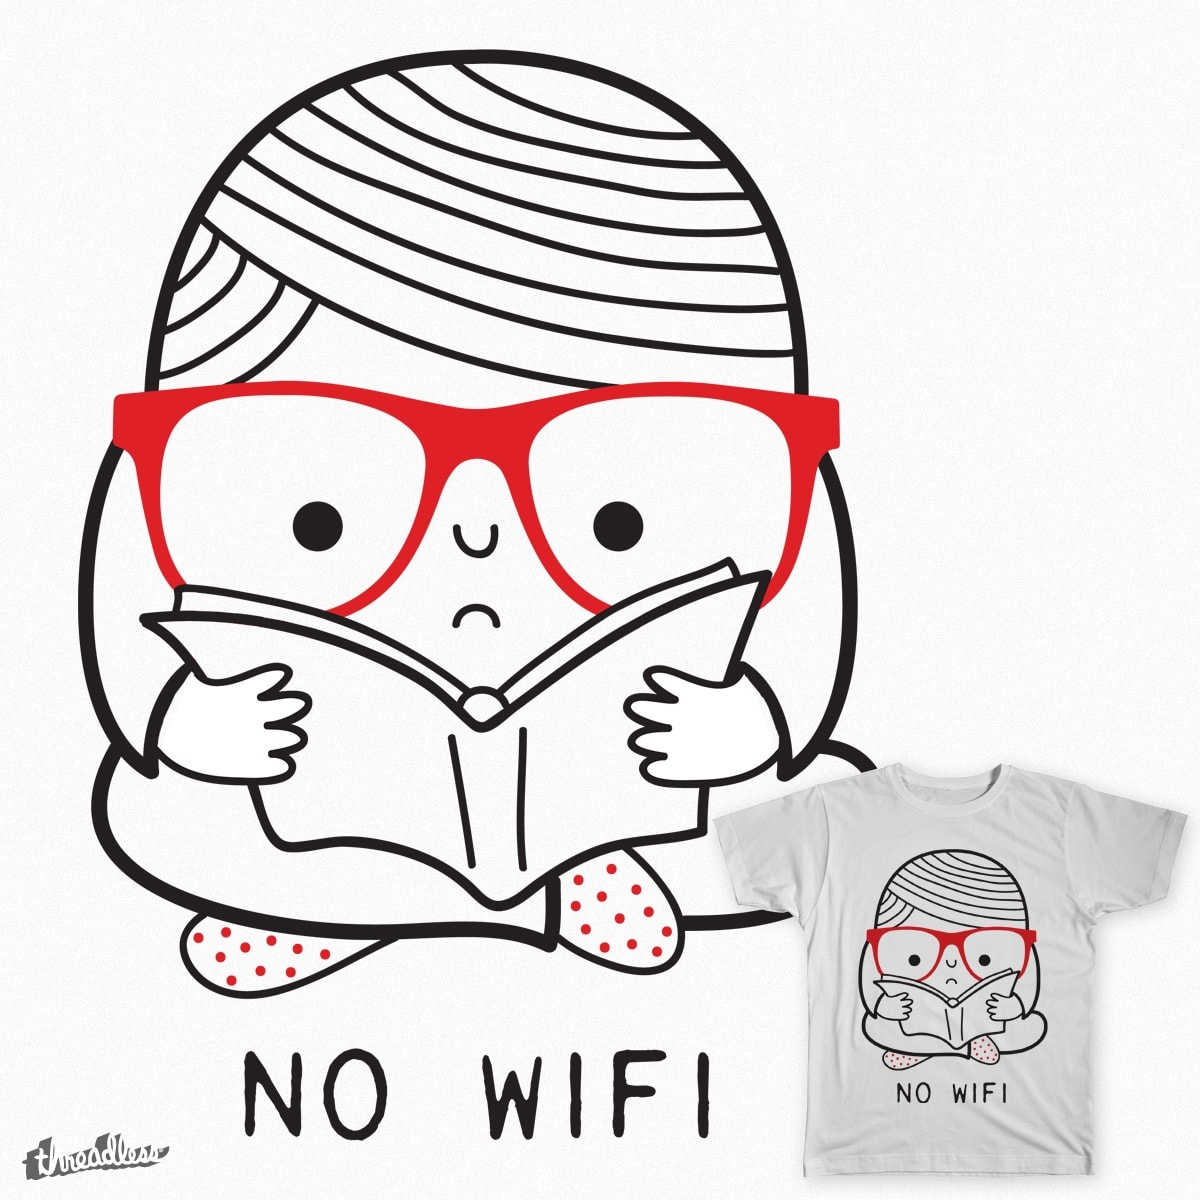 No wifi by Farnell on Threadless